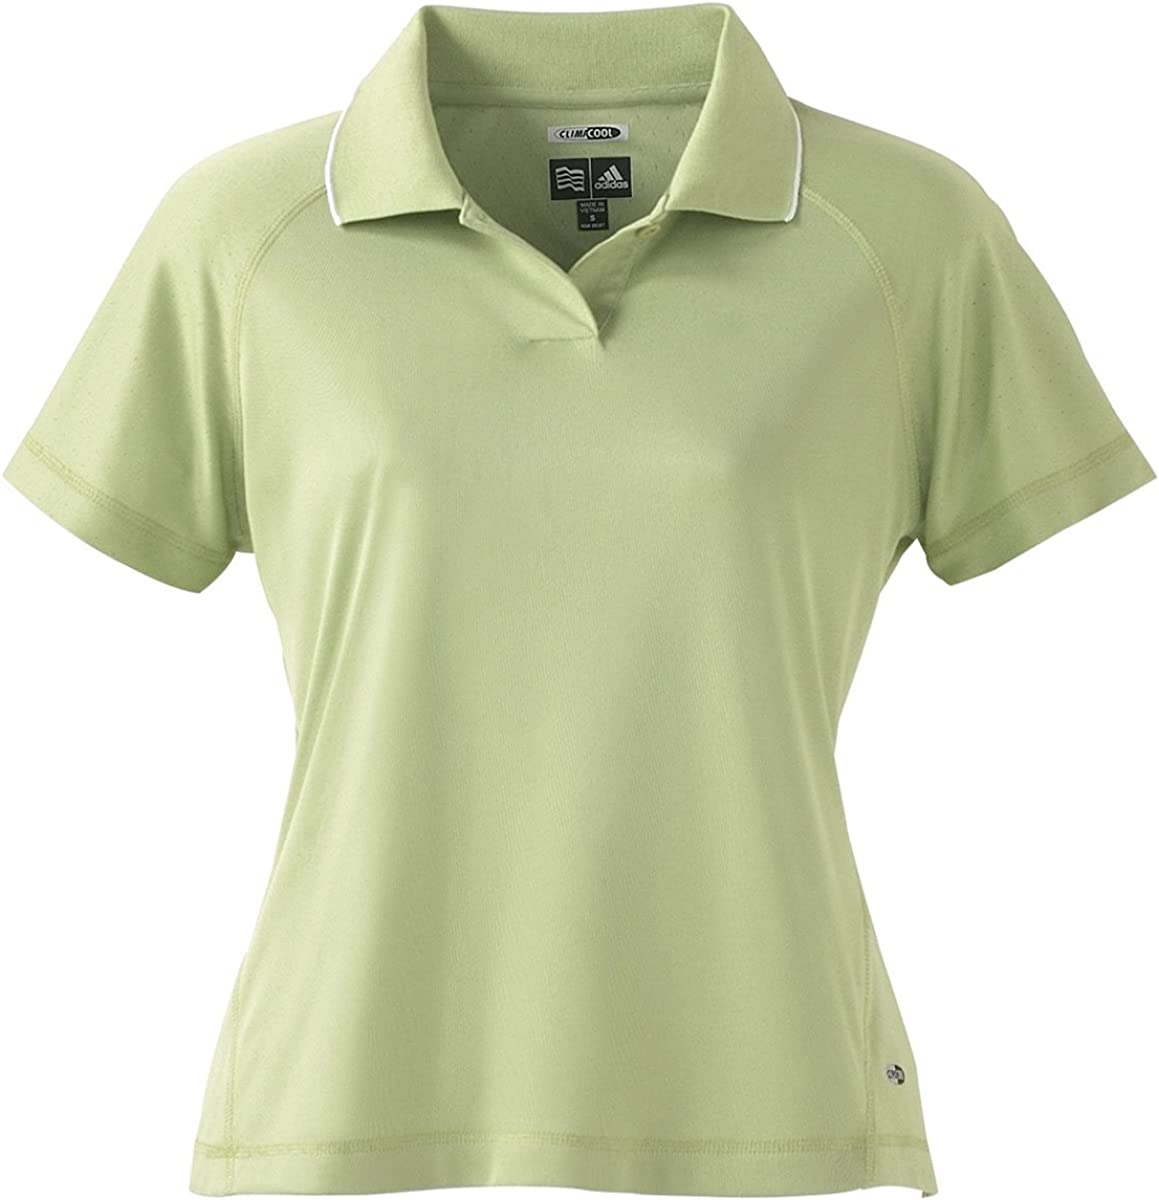 A09 - Large - Apple/white ClimaCool Ladies Mesh Polo